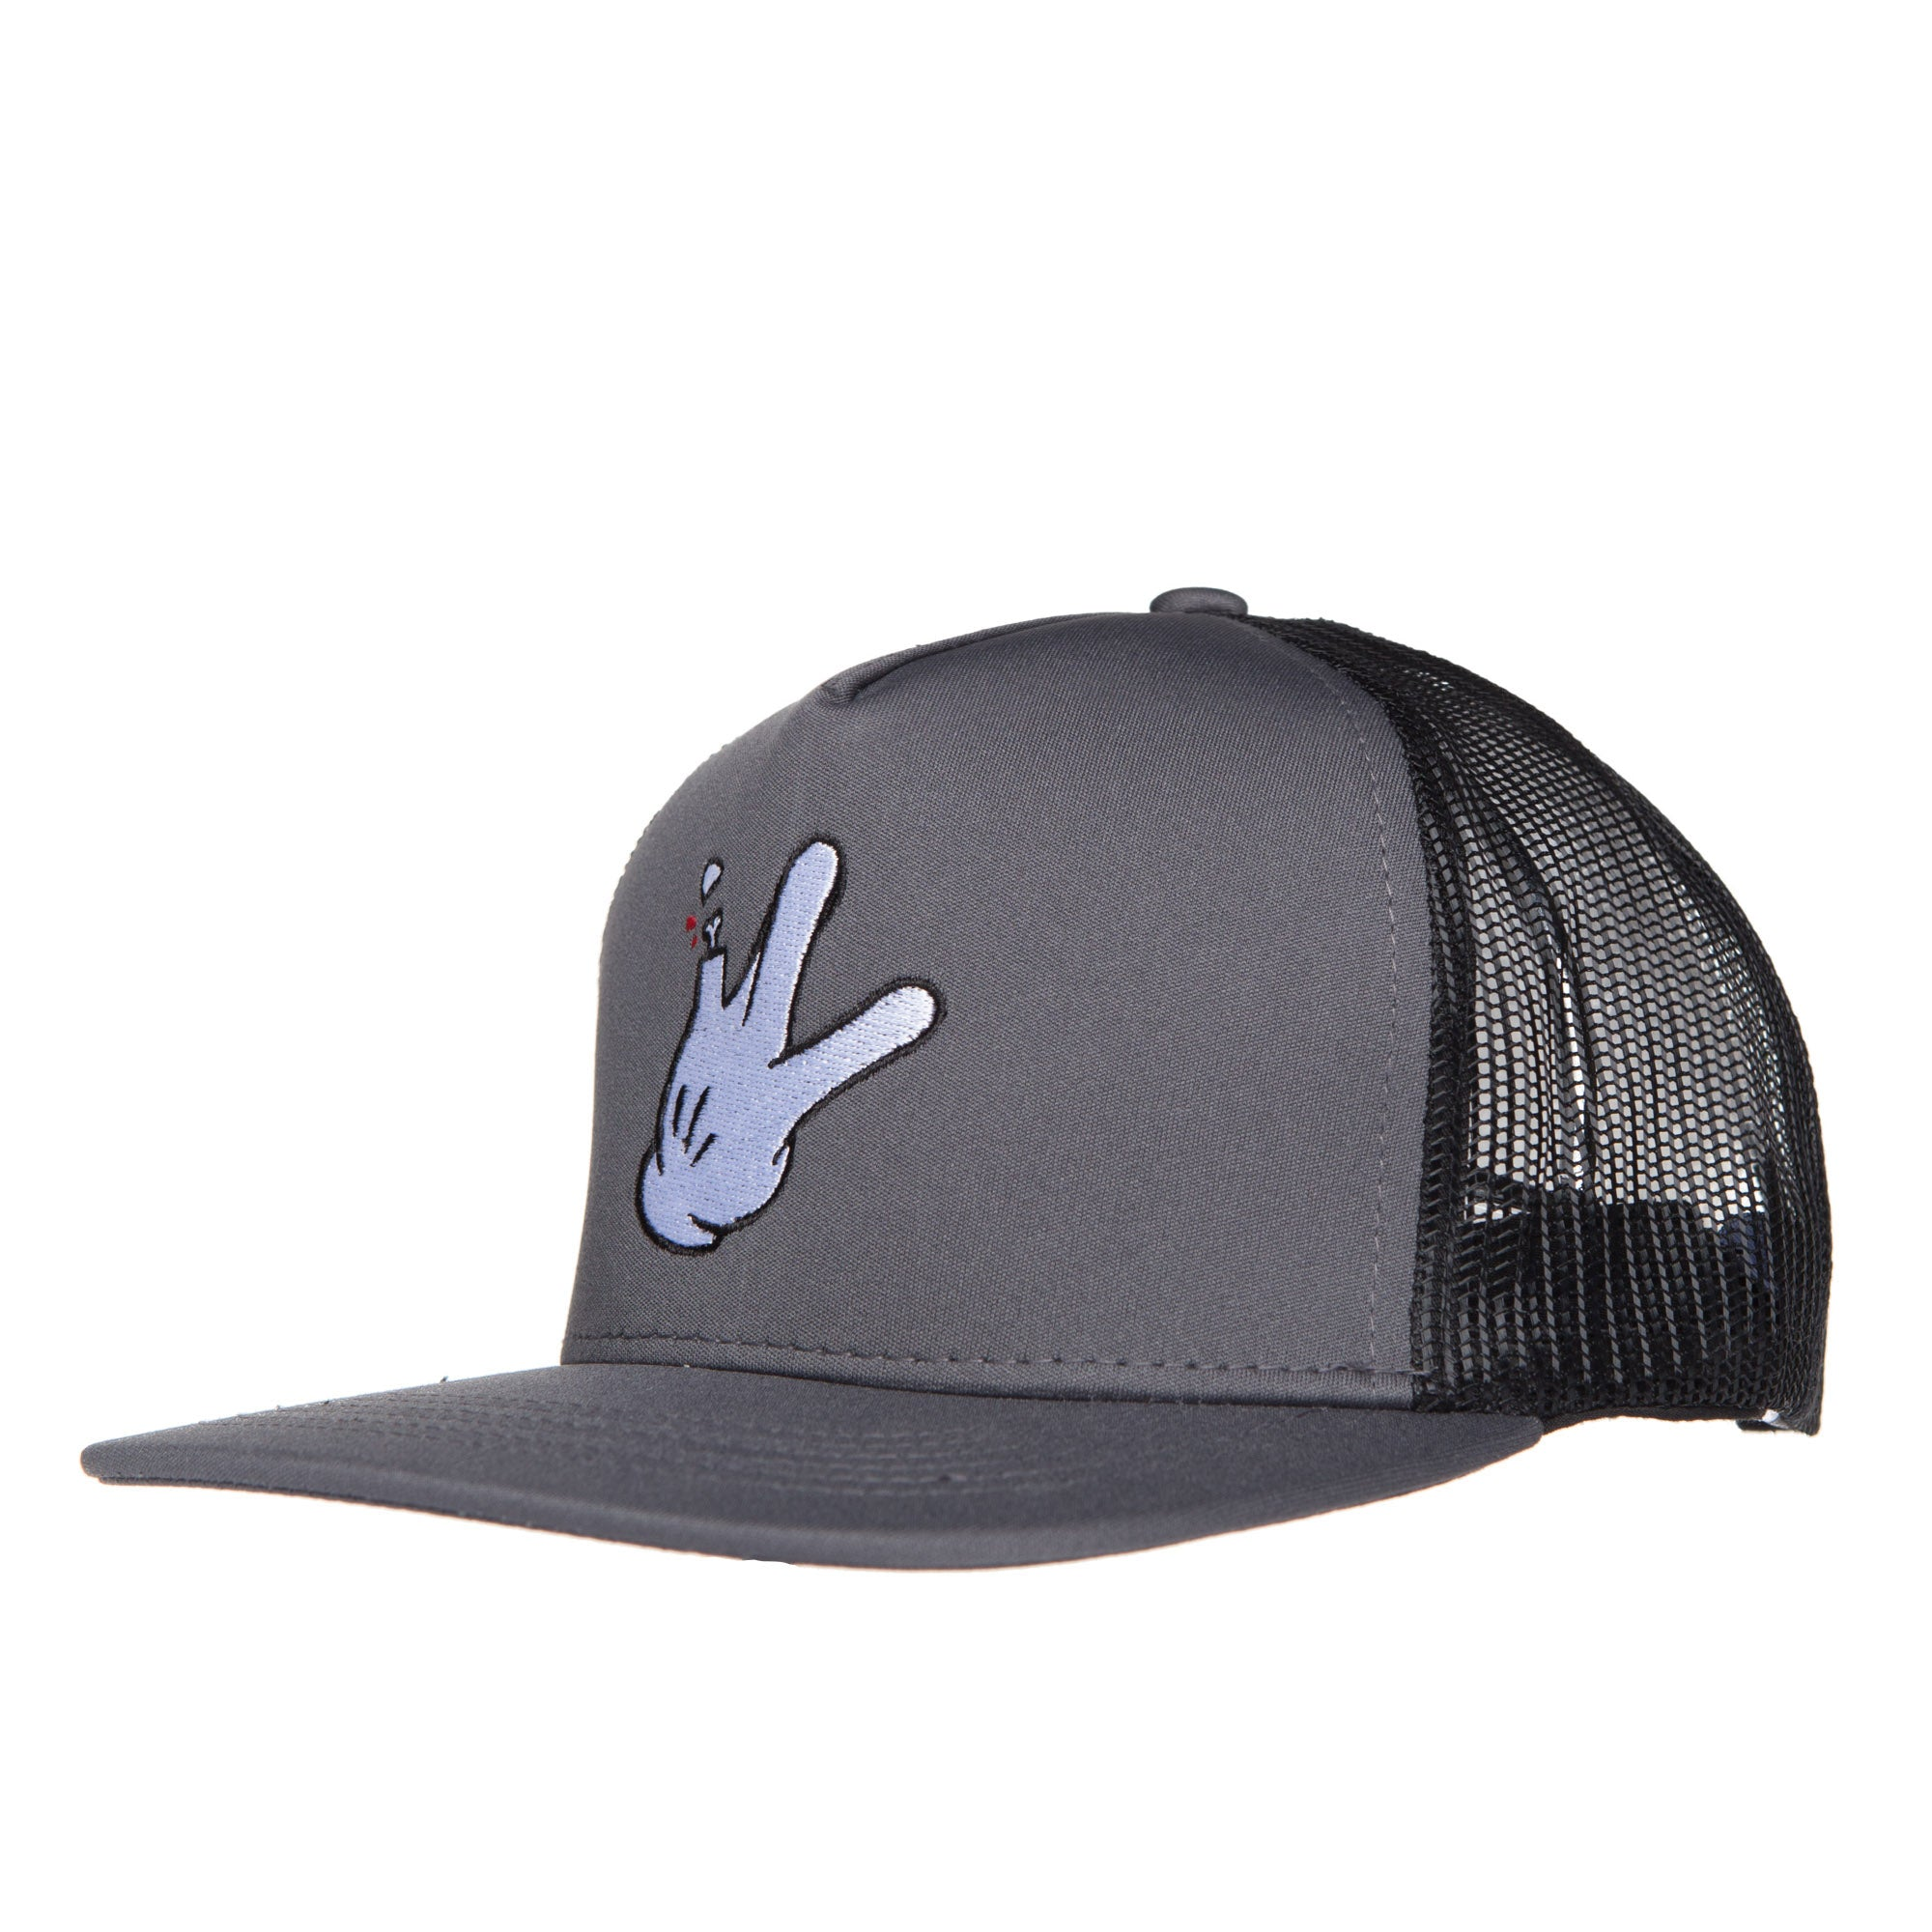 "5 Panel Grey/Black Mesh Flatbill RaceKraft ""Glove"" Trucker Hat"